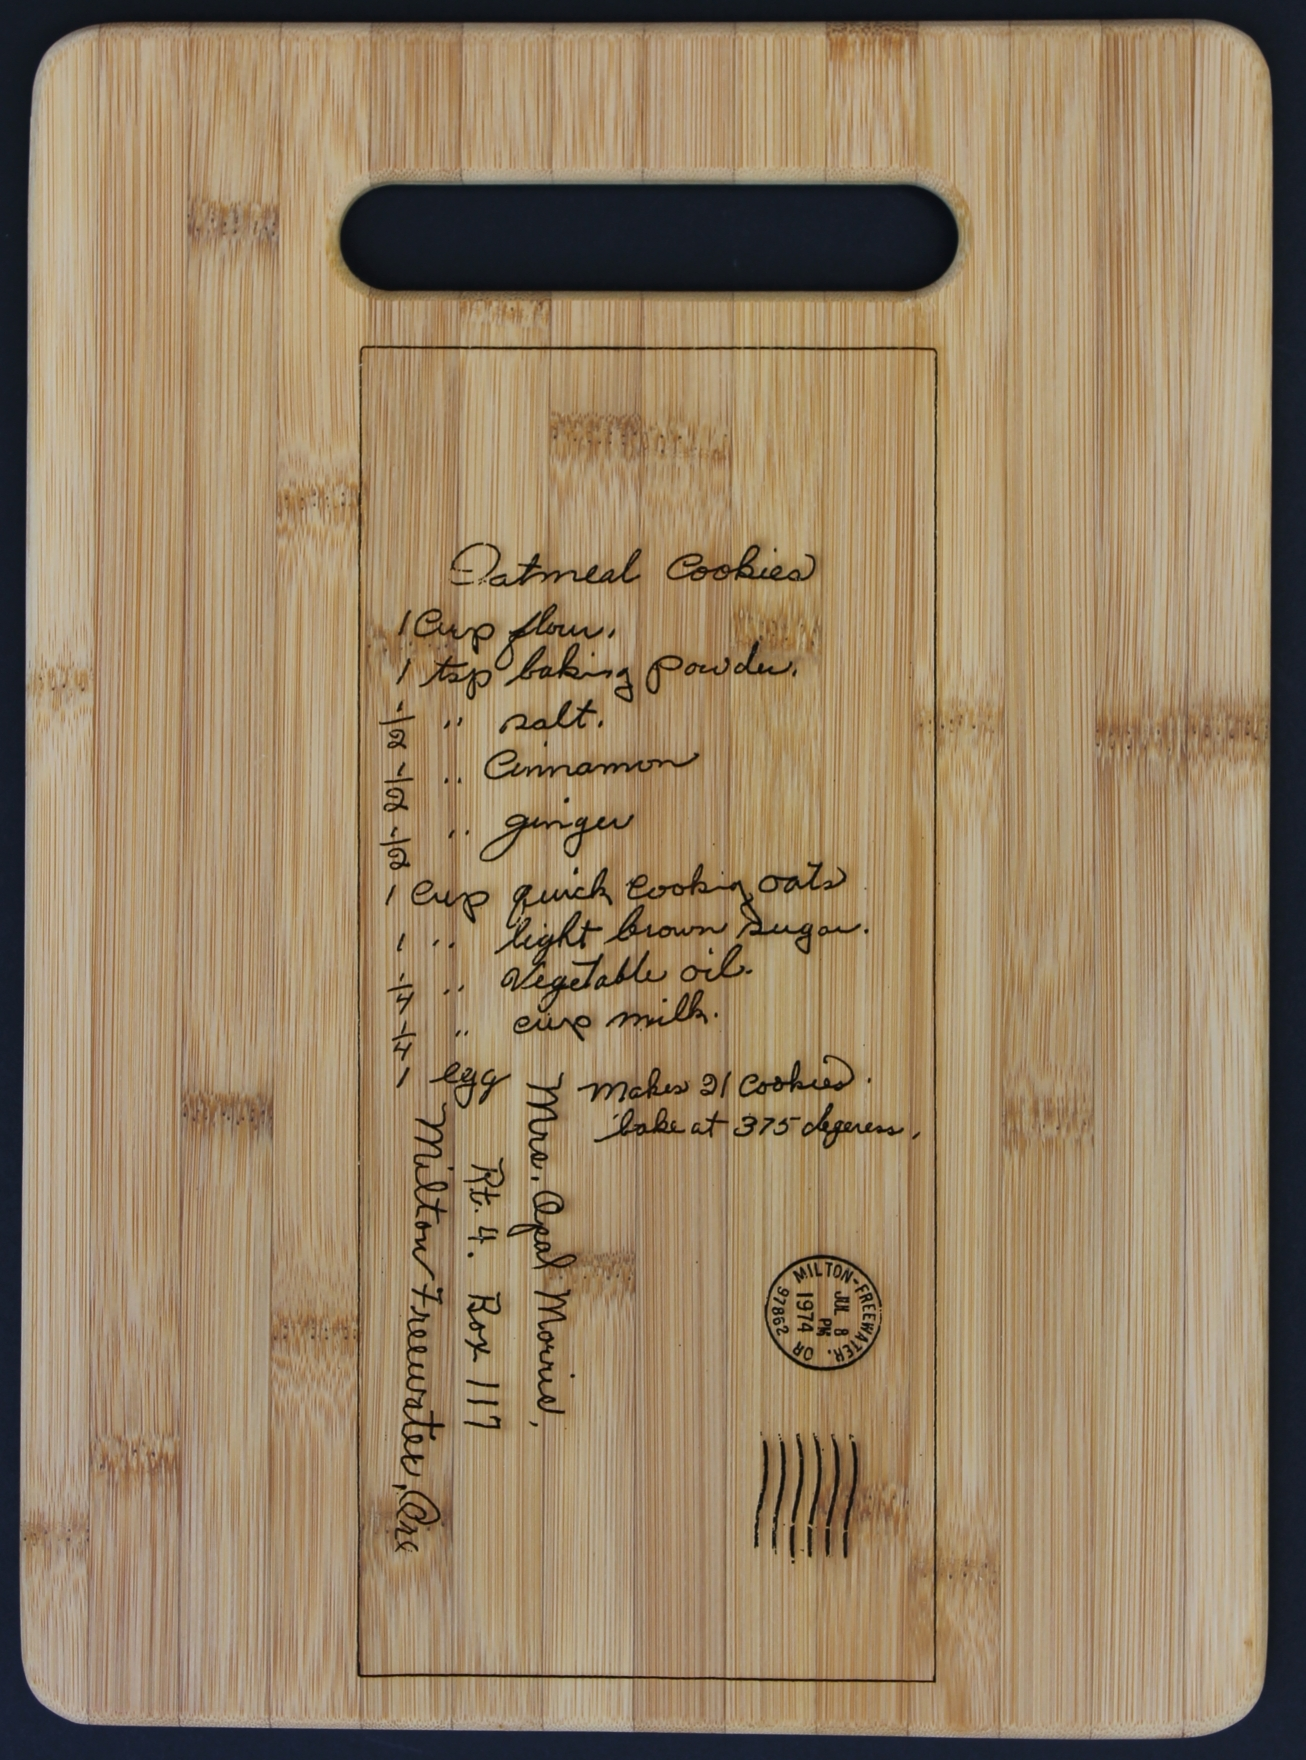 Vertical Cutting Board with a Custom Scan